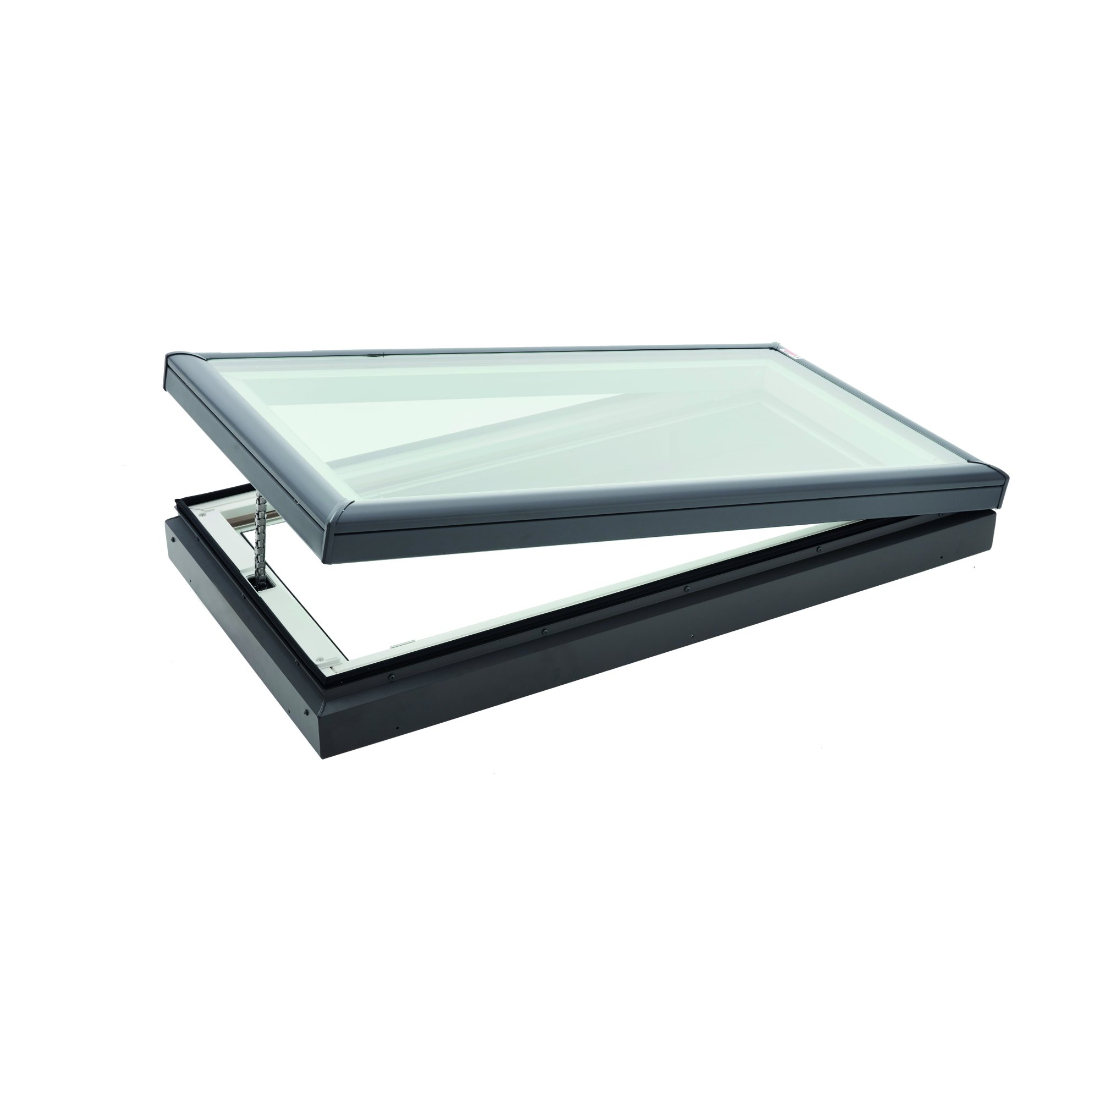 Low Pitch Manual Opening Skylight 895 x 895mm